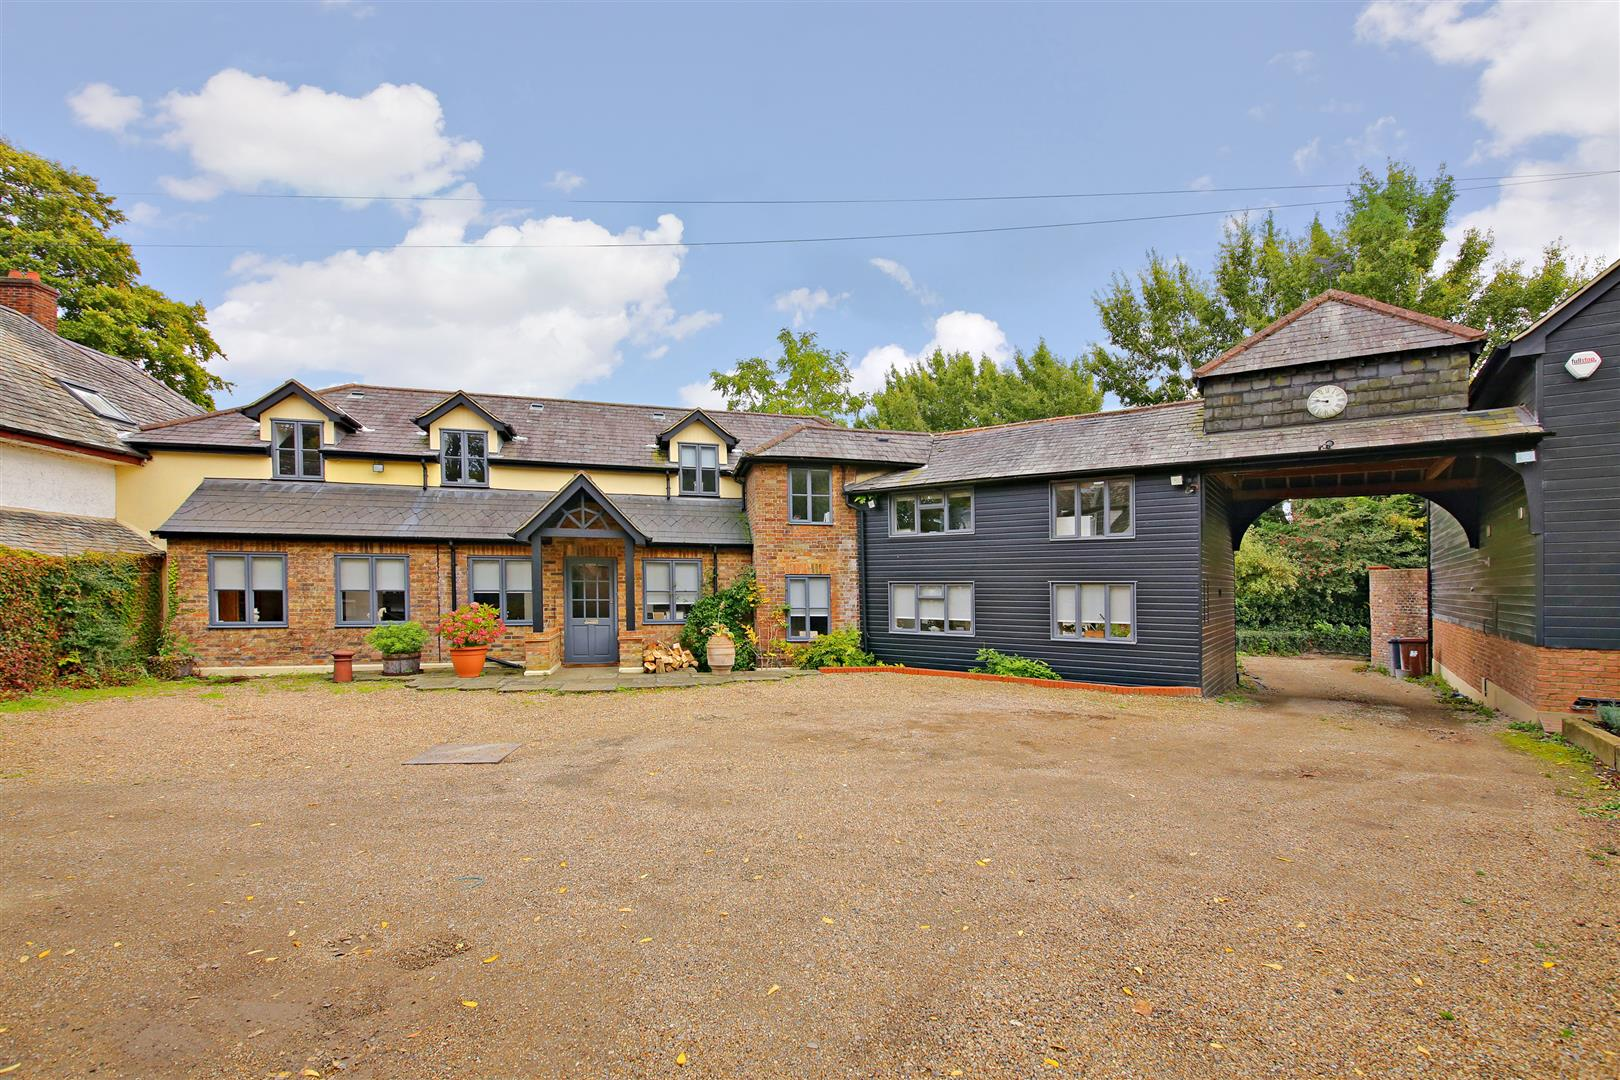 5 bed to rent in Letchmore Heath - Property Image 1